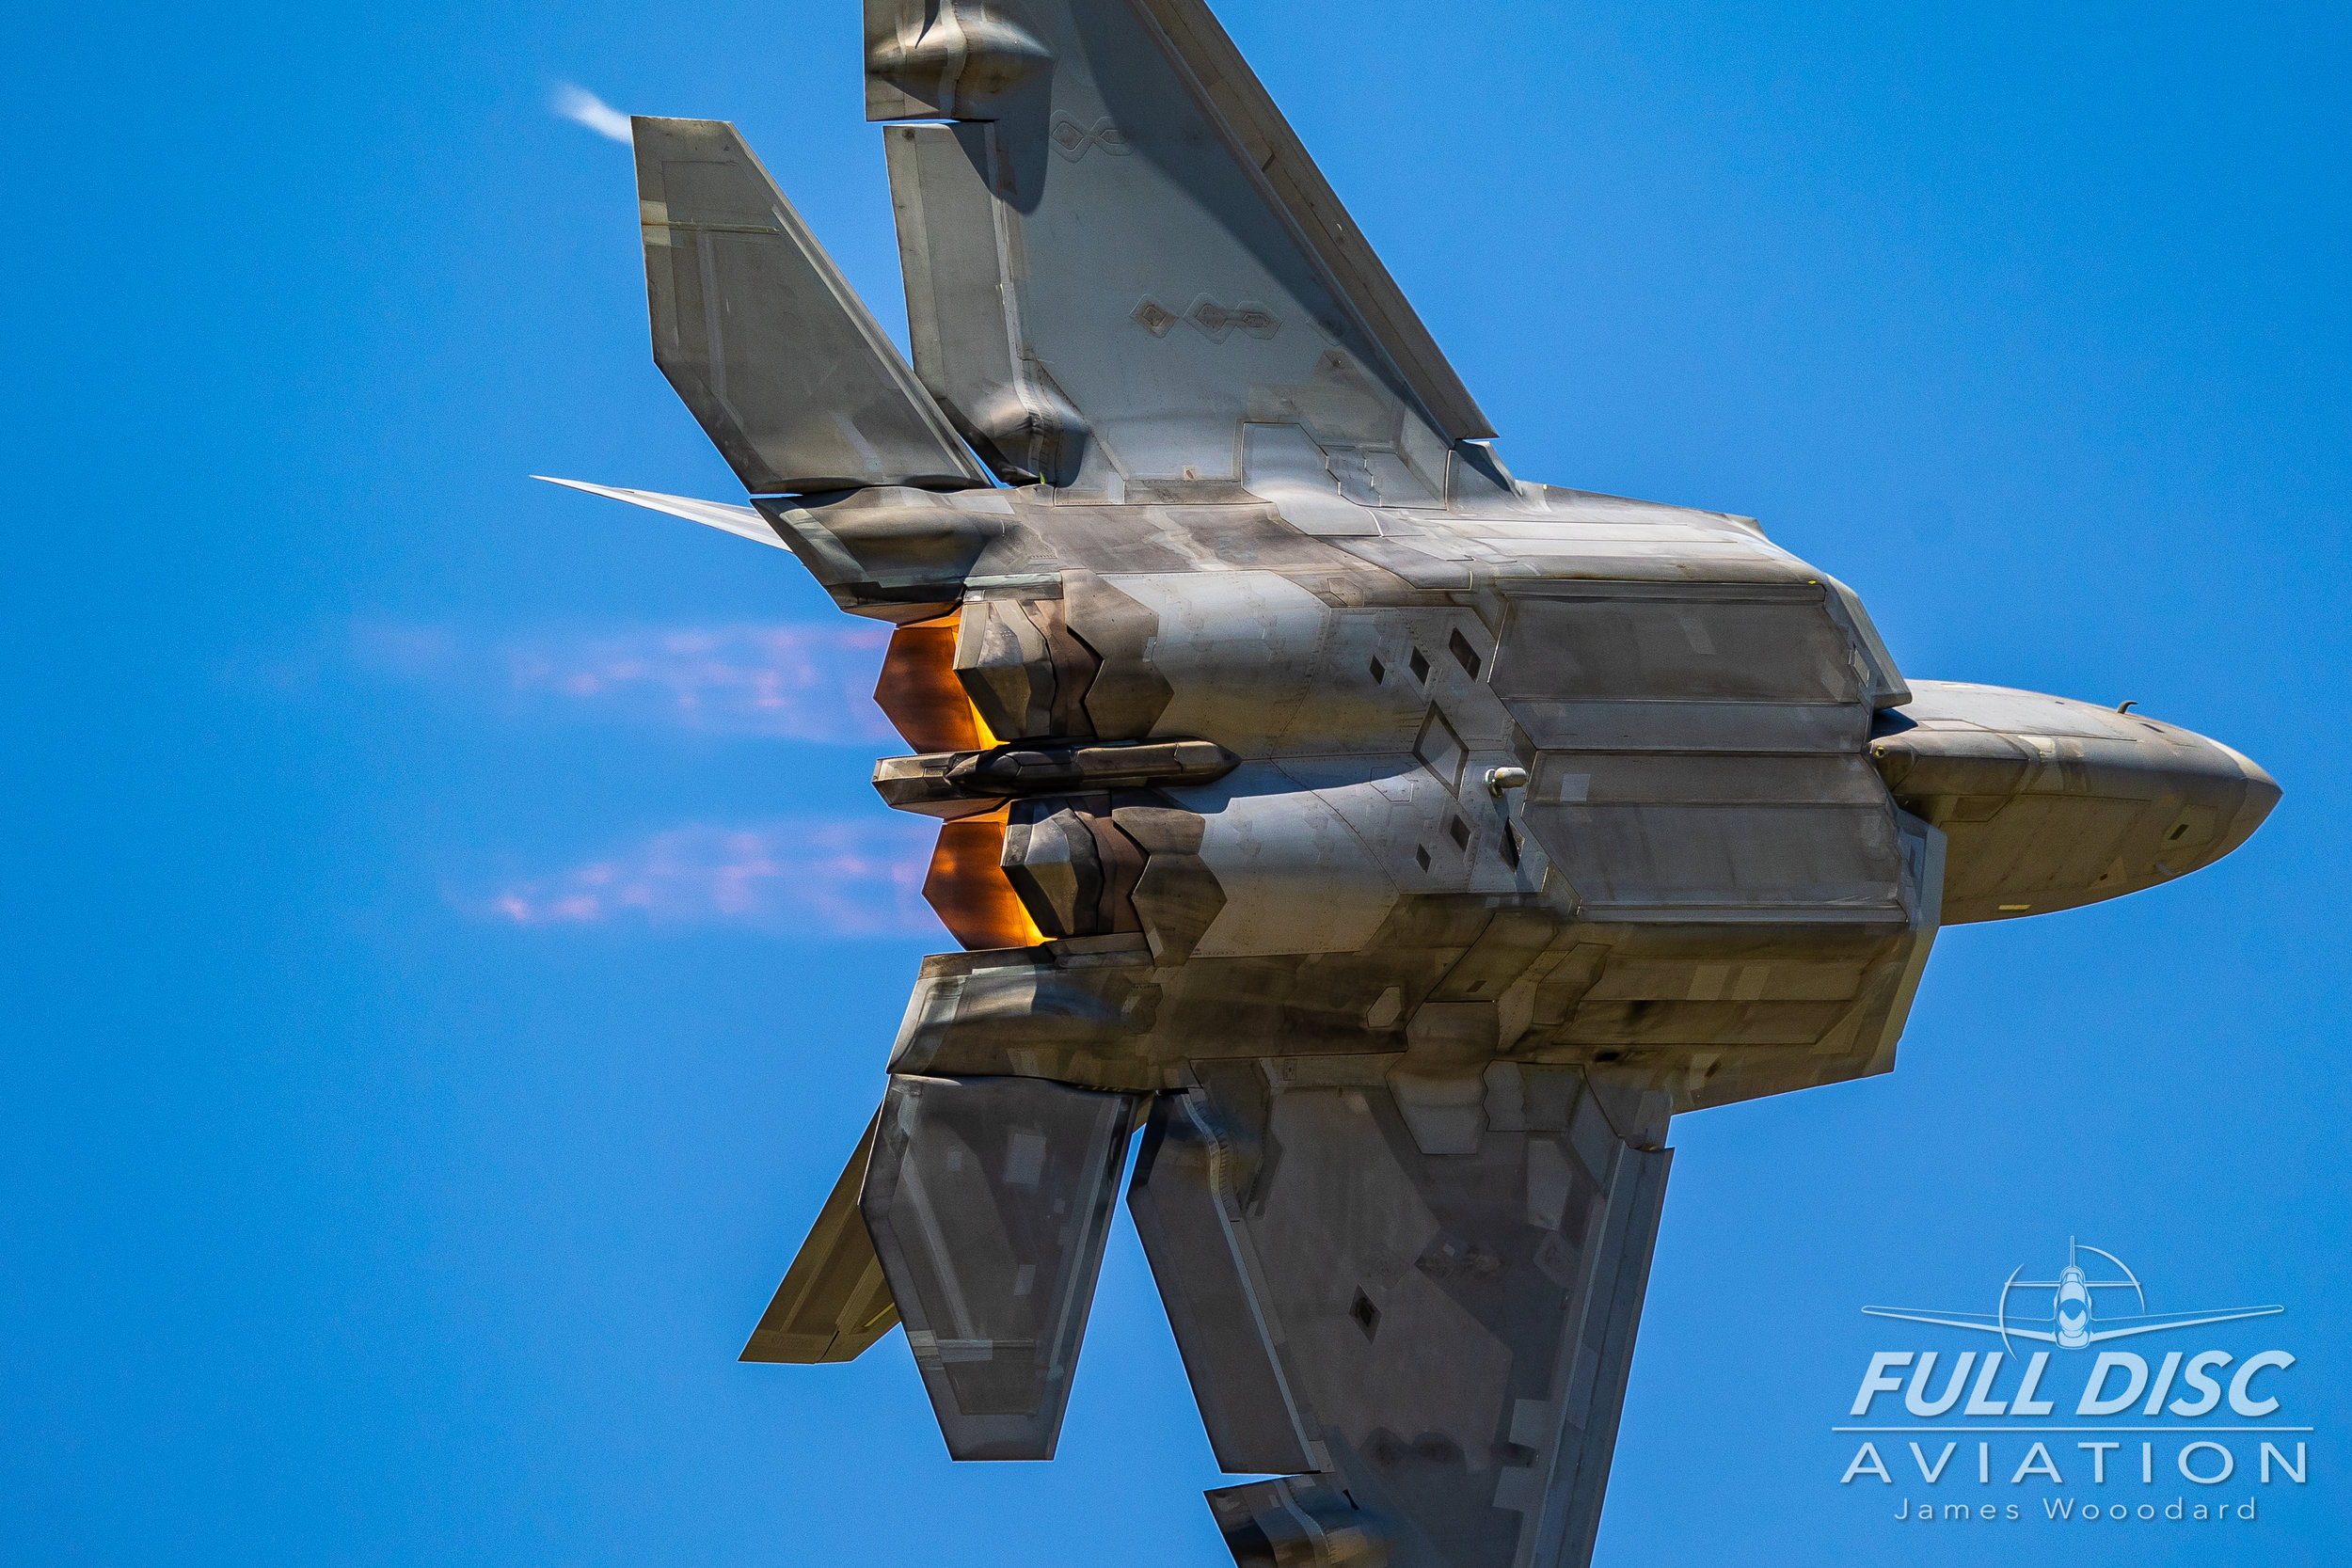 F22_FullDiscAviation_JamesWoodard-April 27, 2019-06.jpg